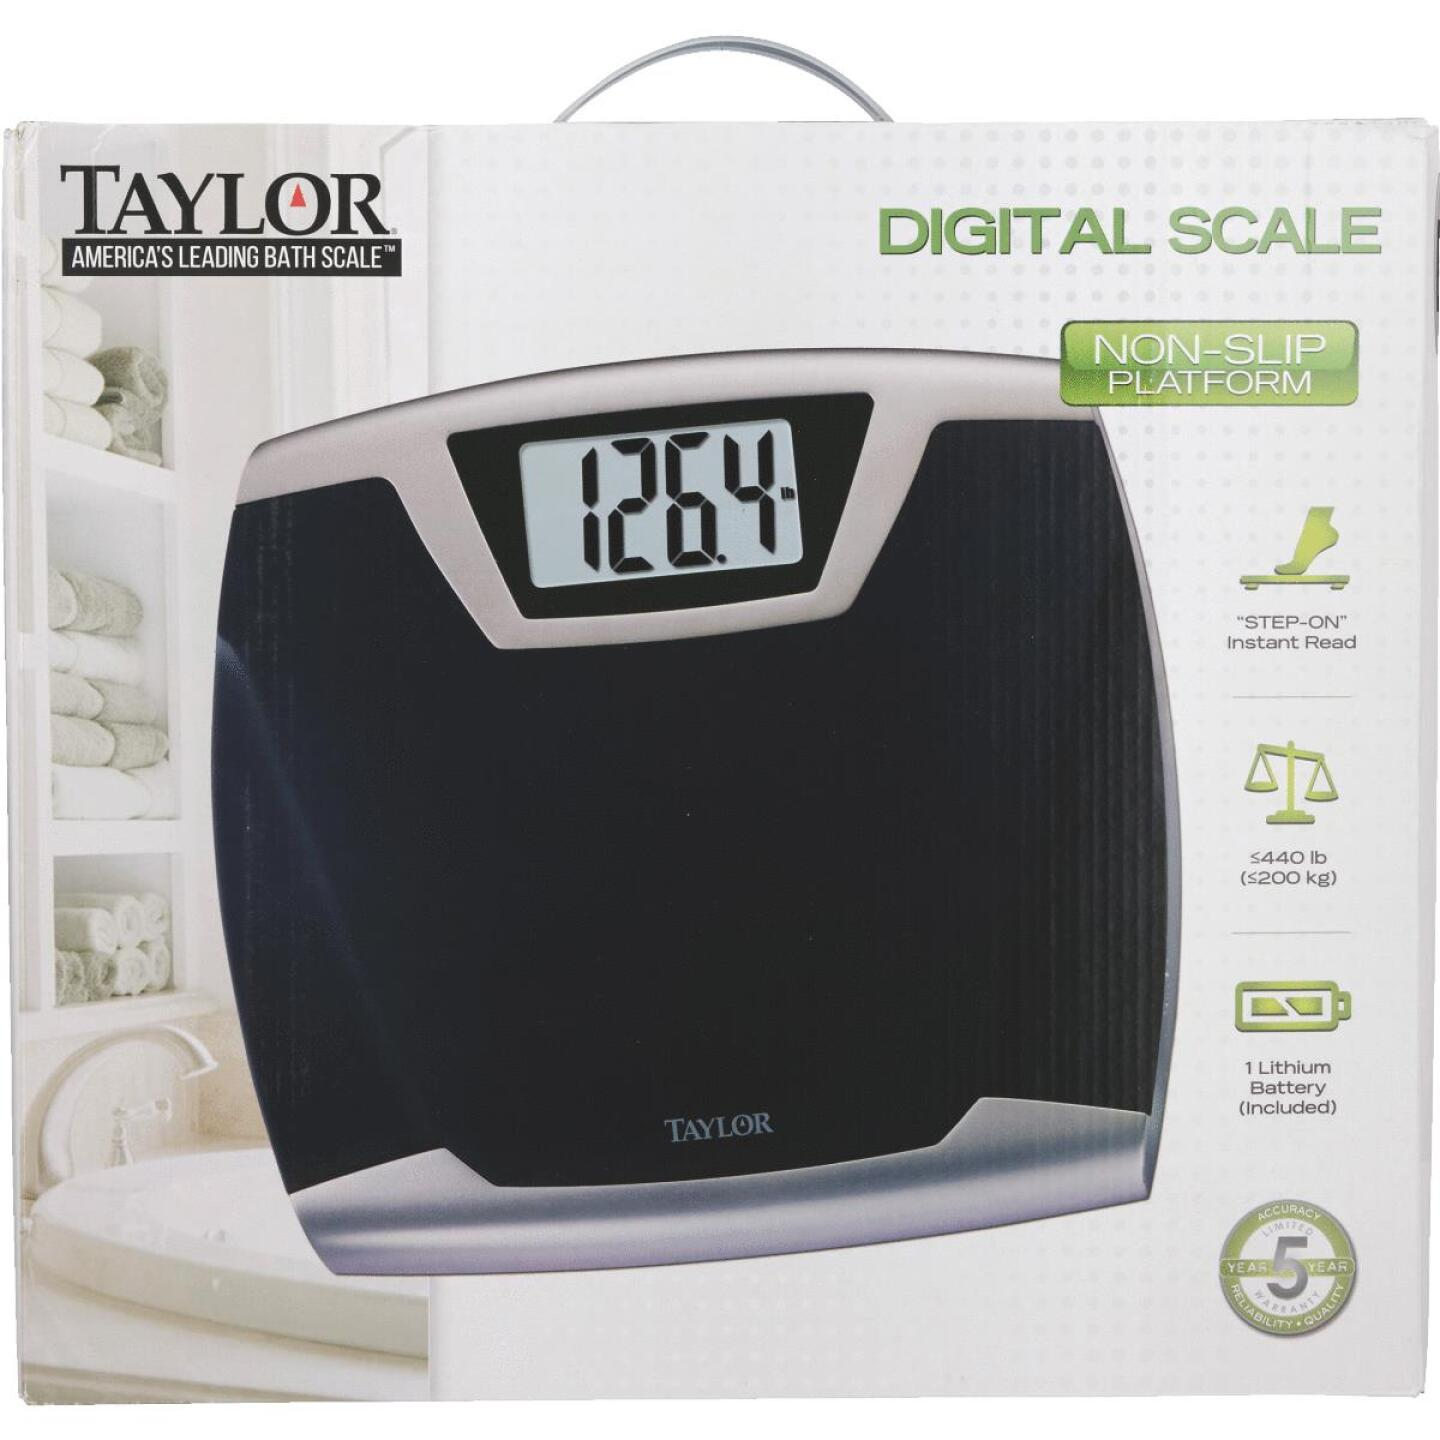 Taylor Digital 440 Lb. Bath Scale, Black Image 2